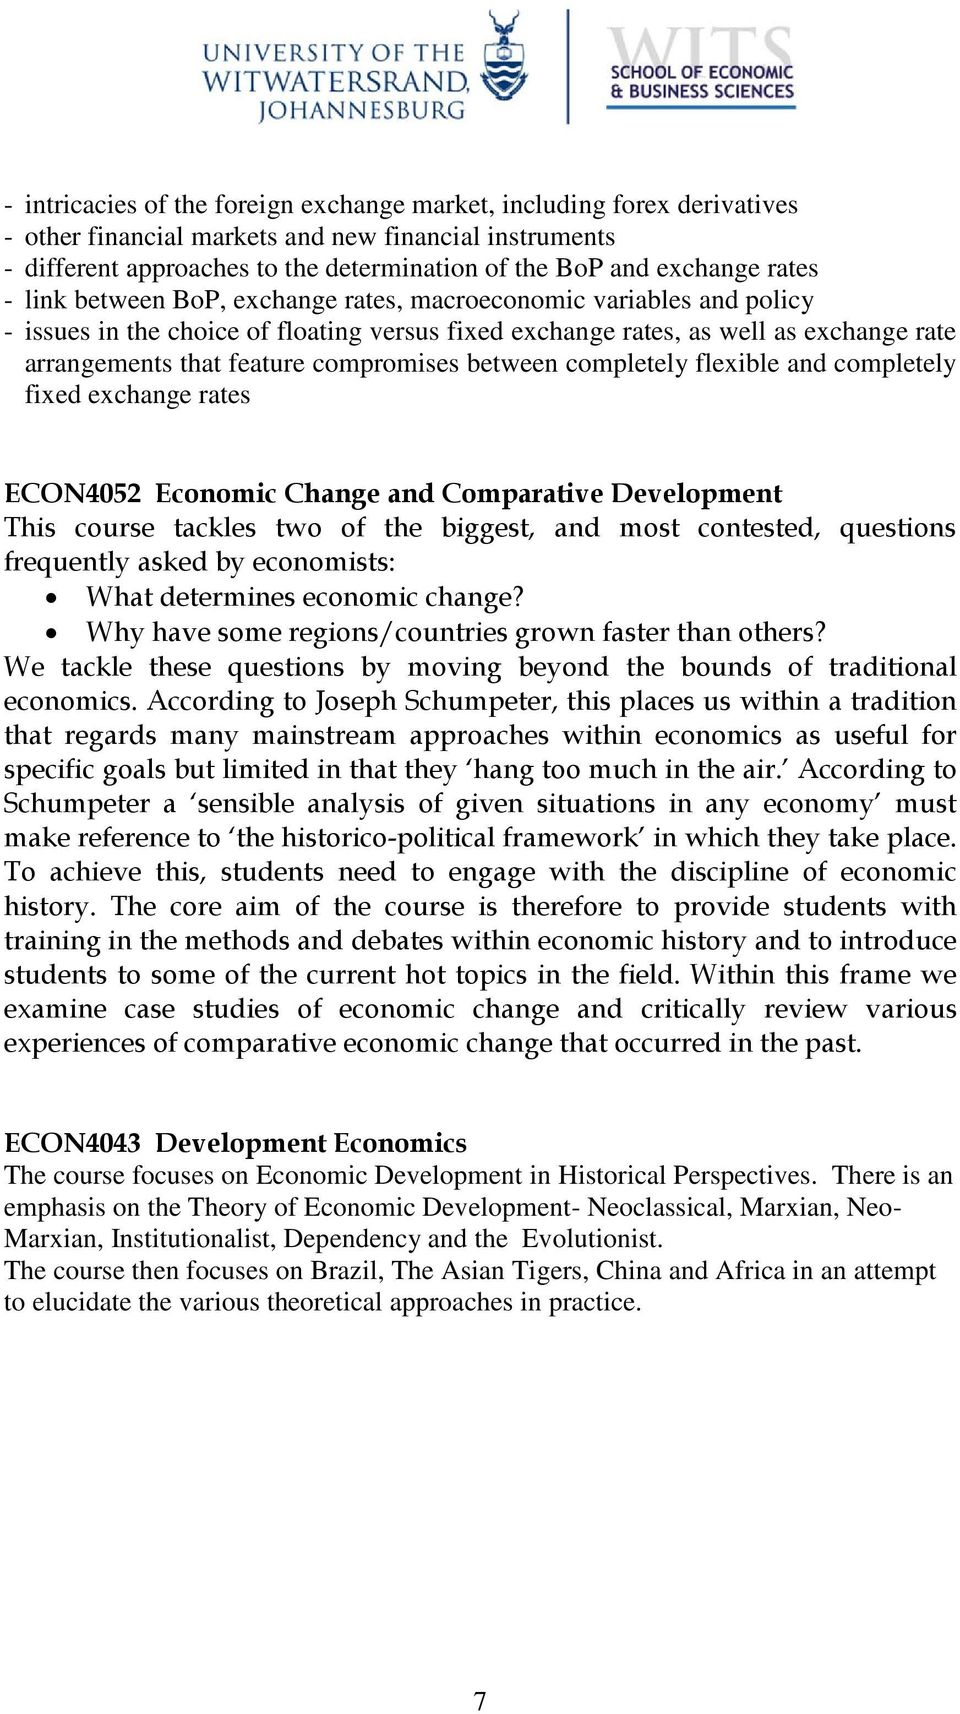 Examples List on Economic Globalization